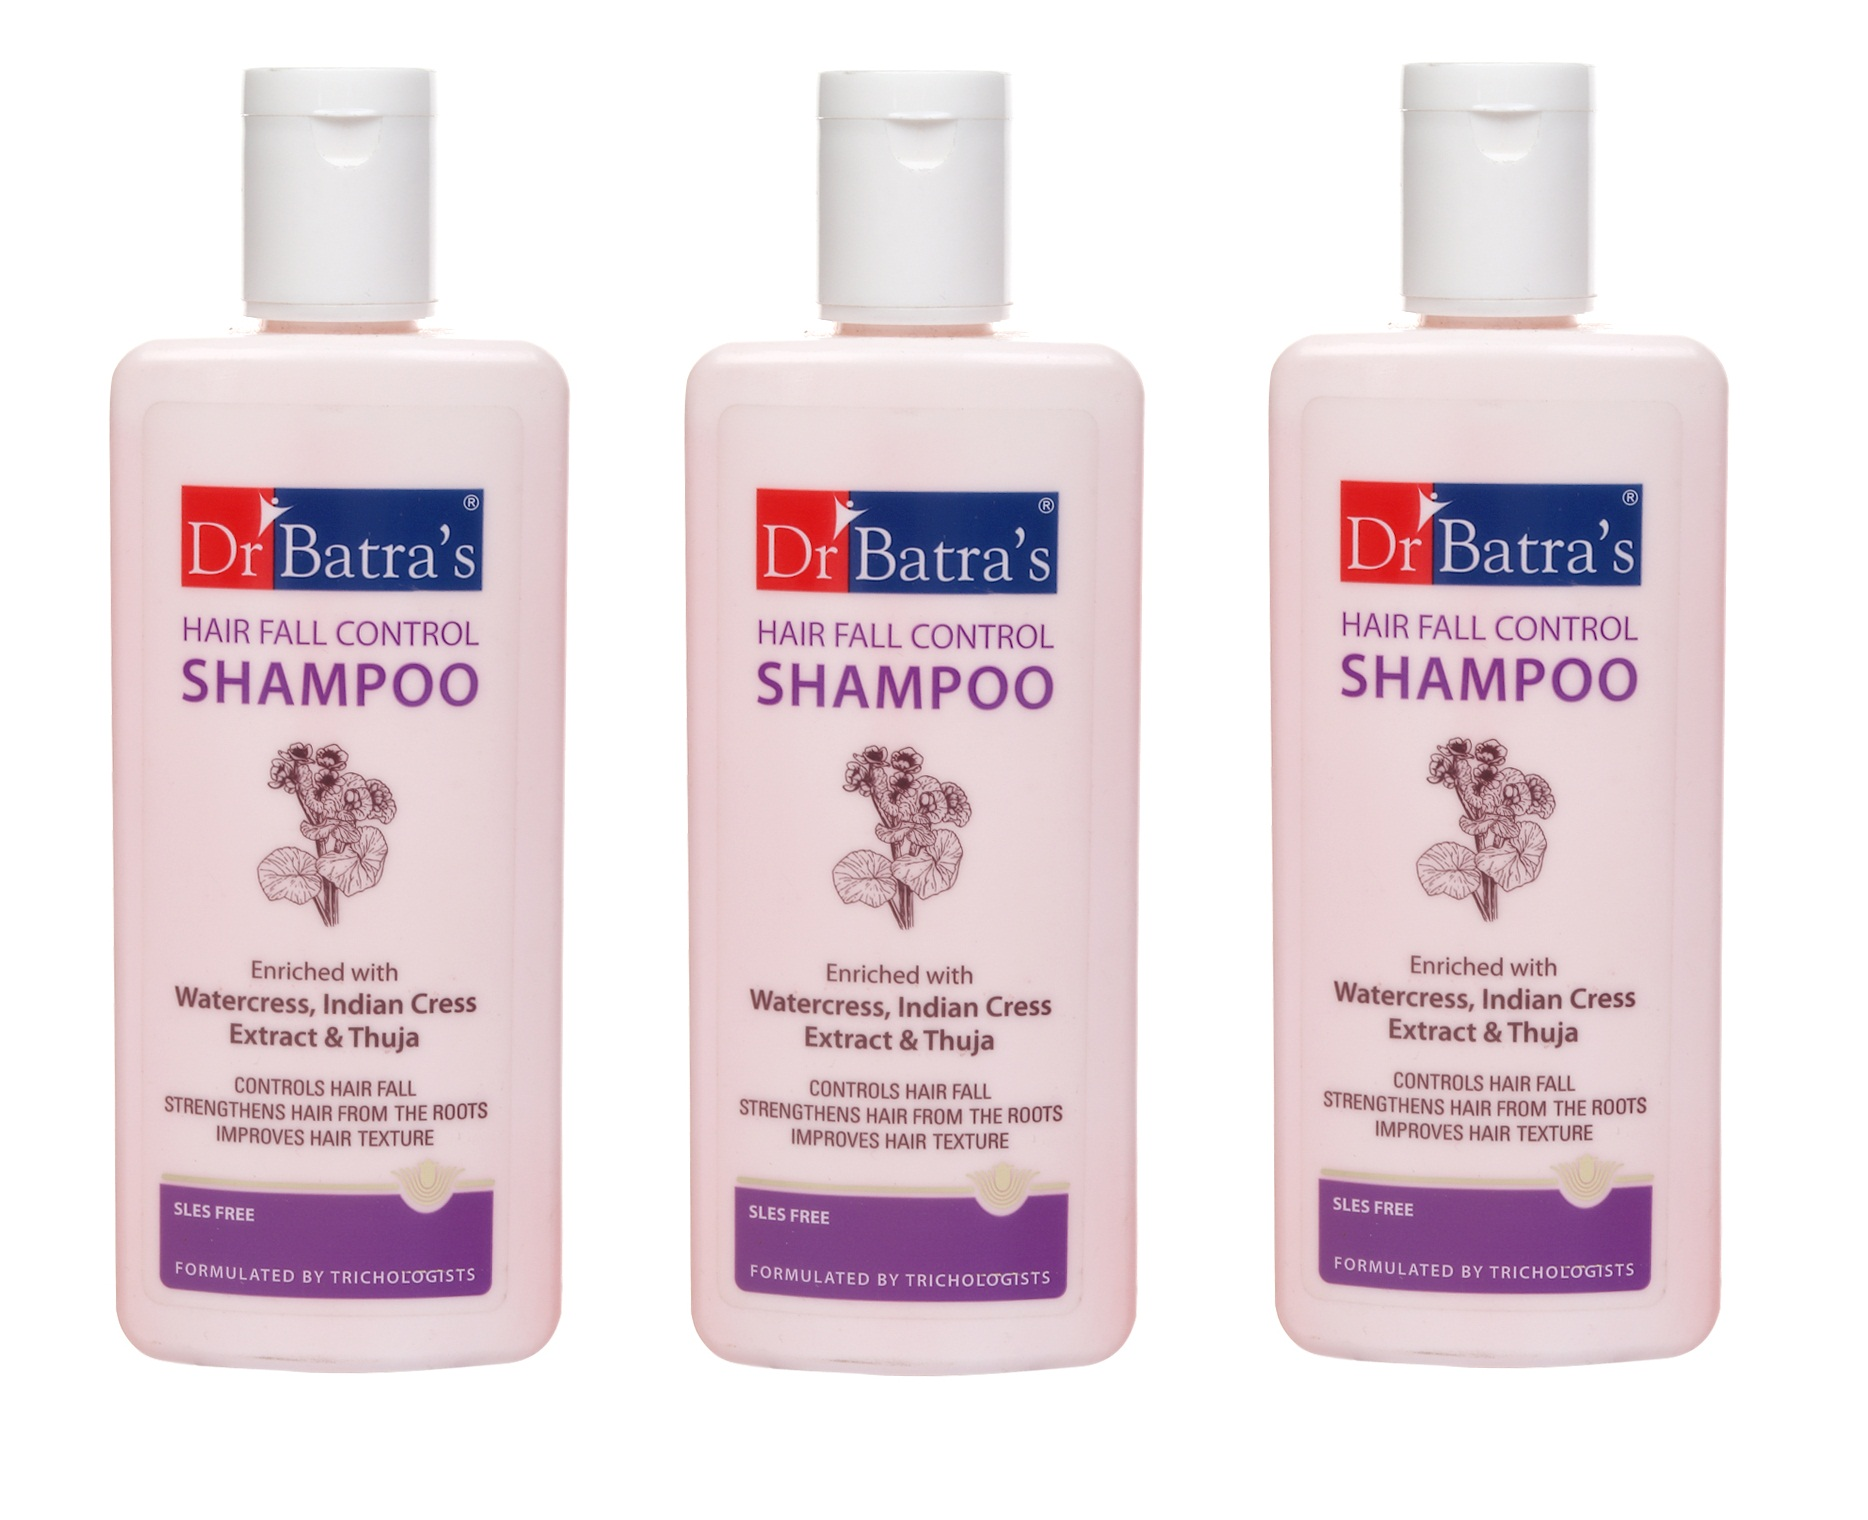 Dr Batra's | Dr Batra's Hair Fall Control Shampoo Enriched With Watercress, Indian Cress extract and Thuja - 200 ml (Pack of 3)